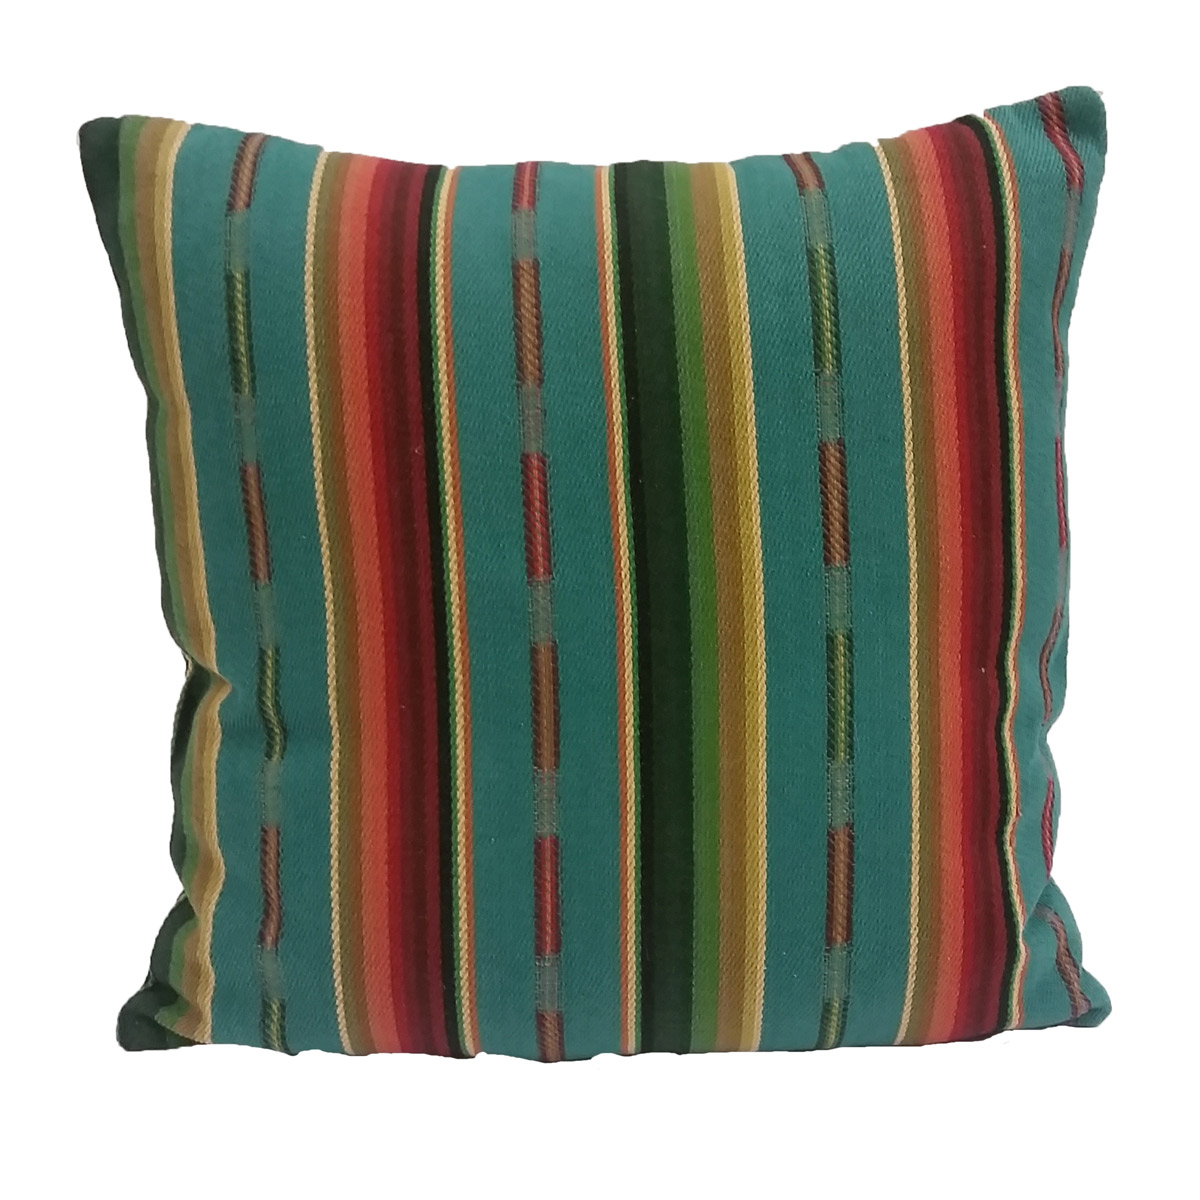 Azul Serape Pillow - 24 x 24